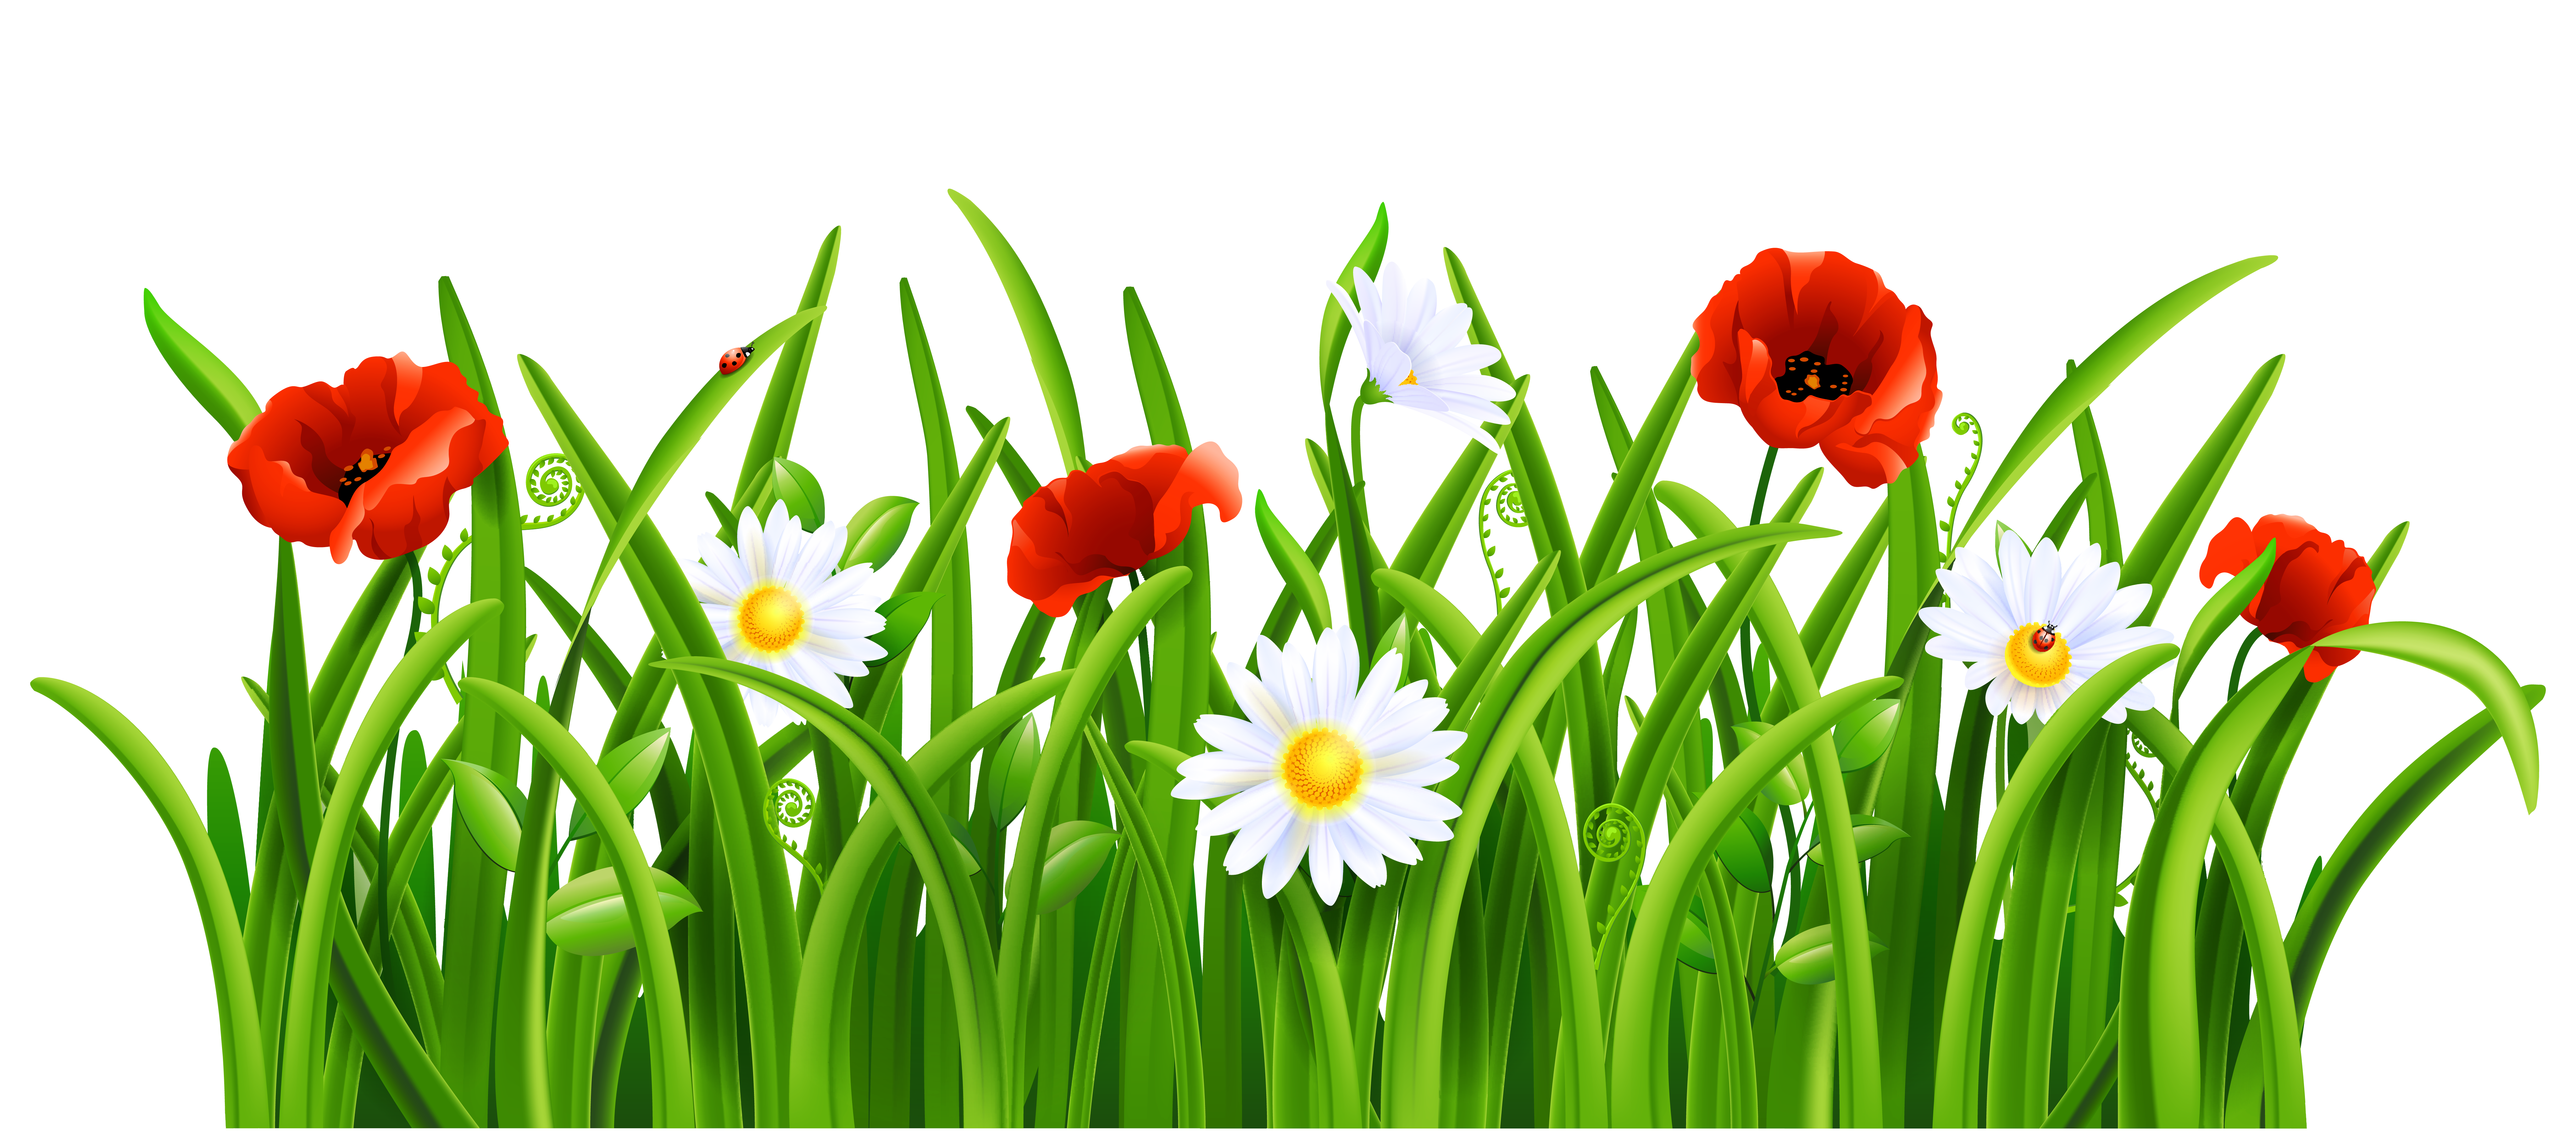 Poppies and daisies with. Poppy clipart grassy